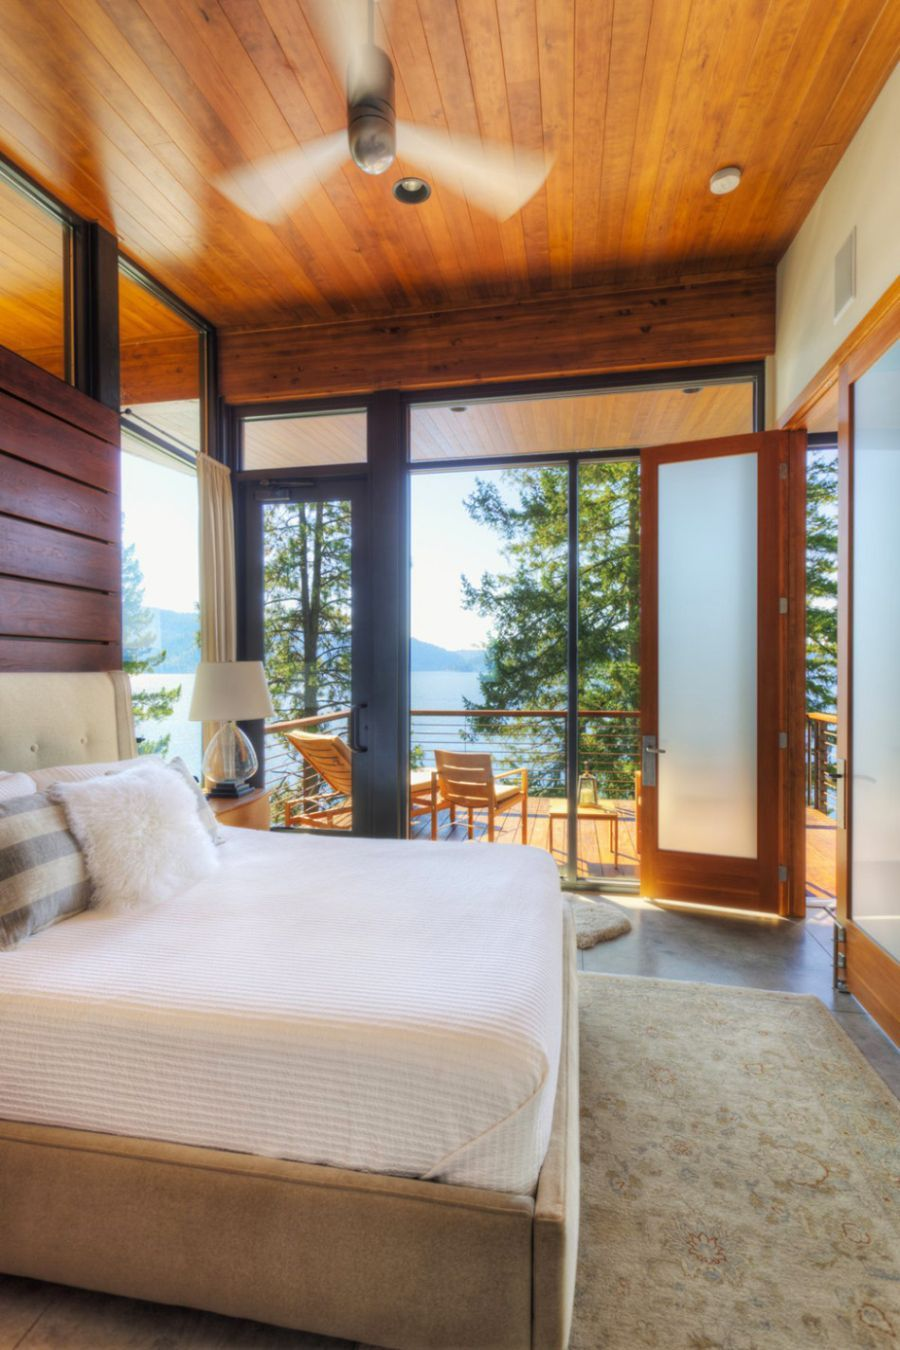 Lake House Bedroom Coeur Dalene Cabin Blends Lovely Lake Views With Modern Interiors